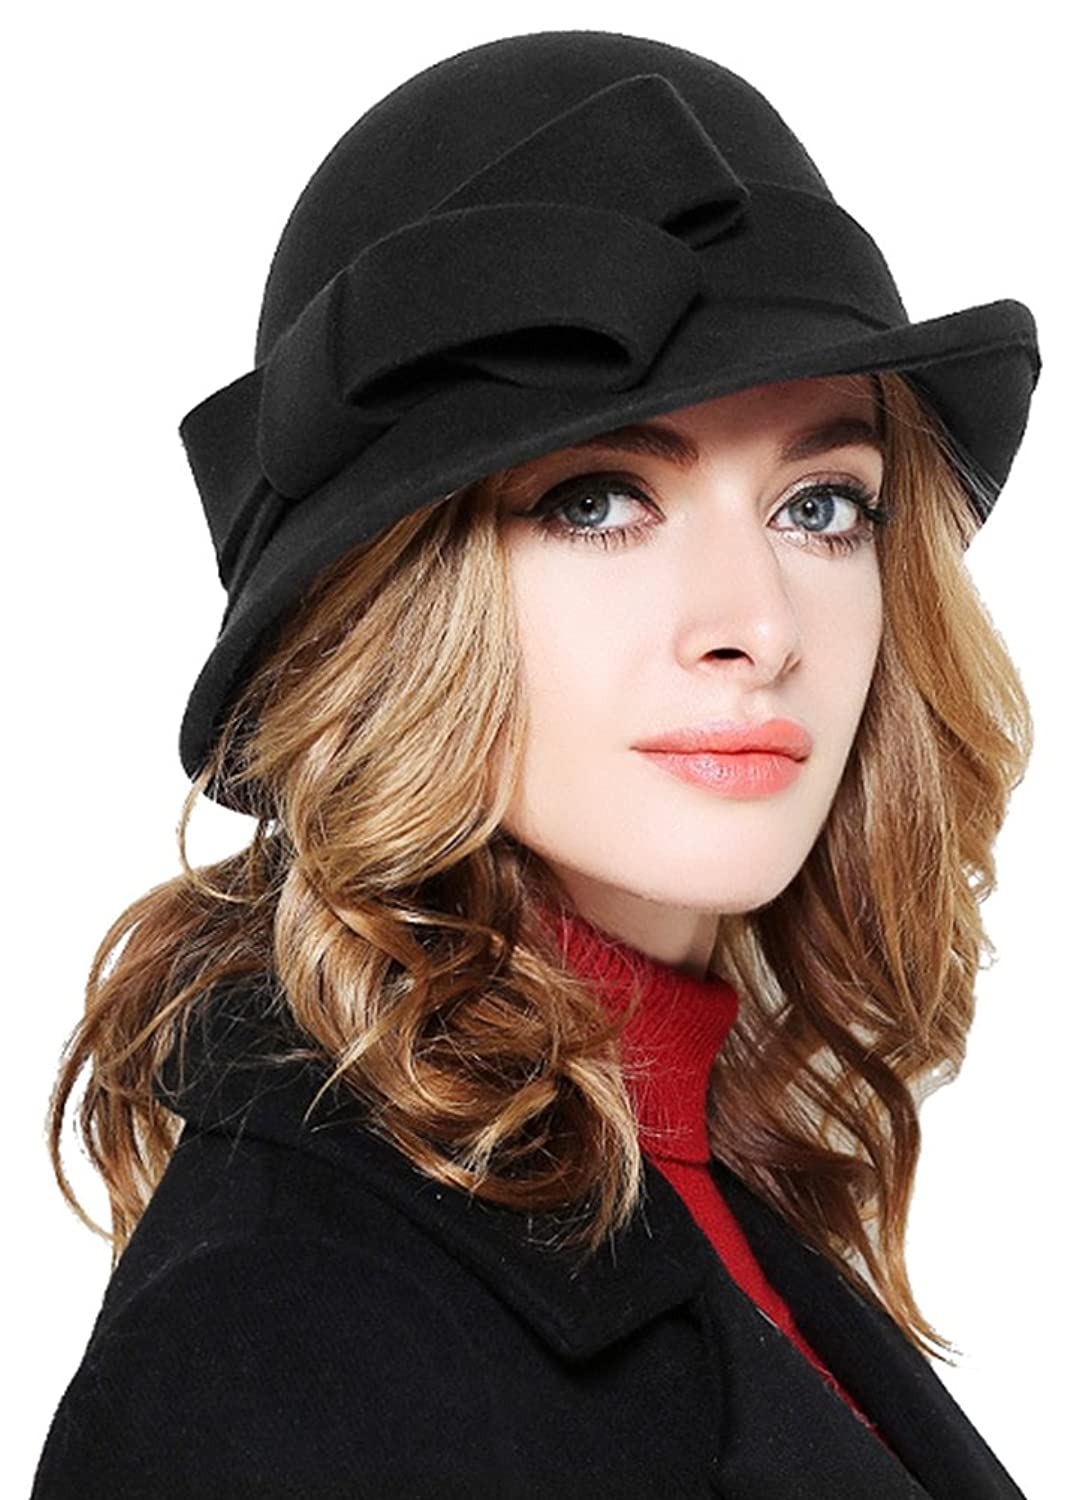 Simple 1920s Hat Decorating with Ribbon Bellady Women Solid Color Winter Hat 100% Wool Cloche Bucket with Bow Accent $21.99 AT vintagedancer.com